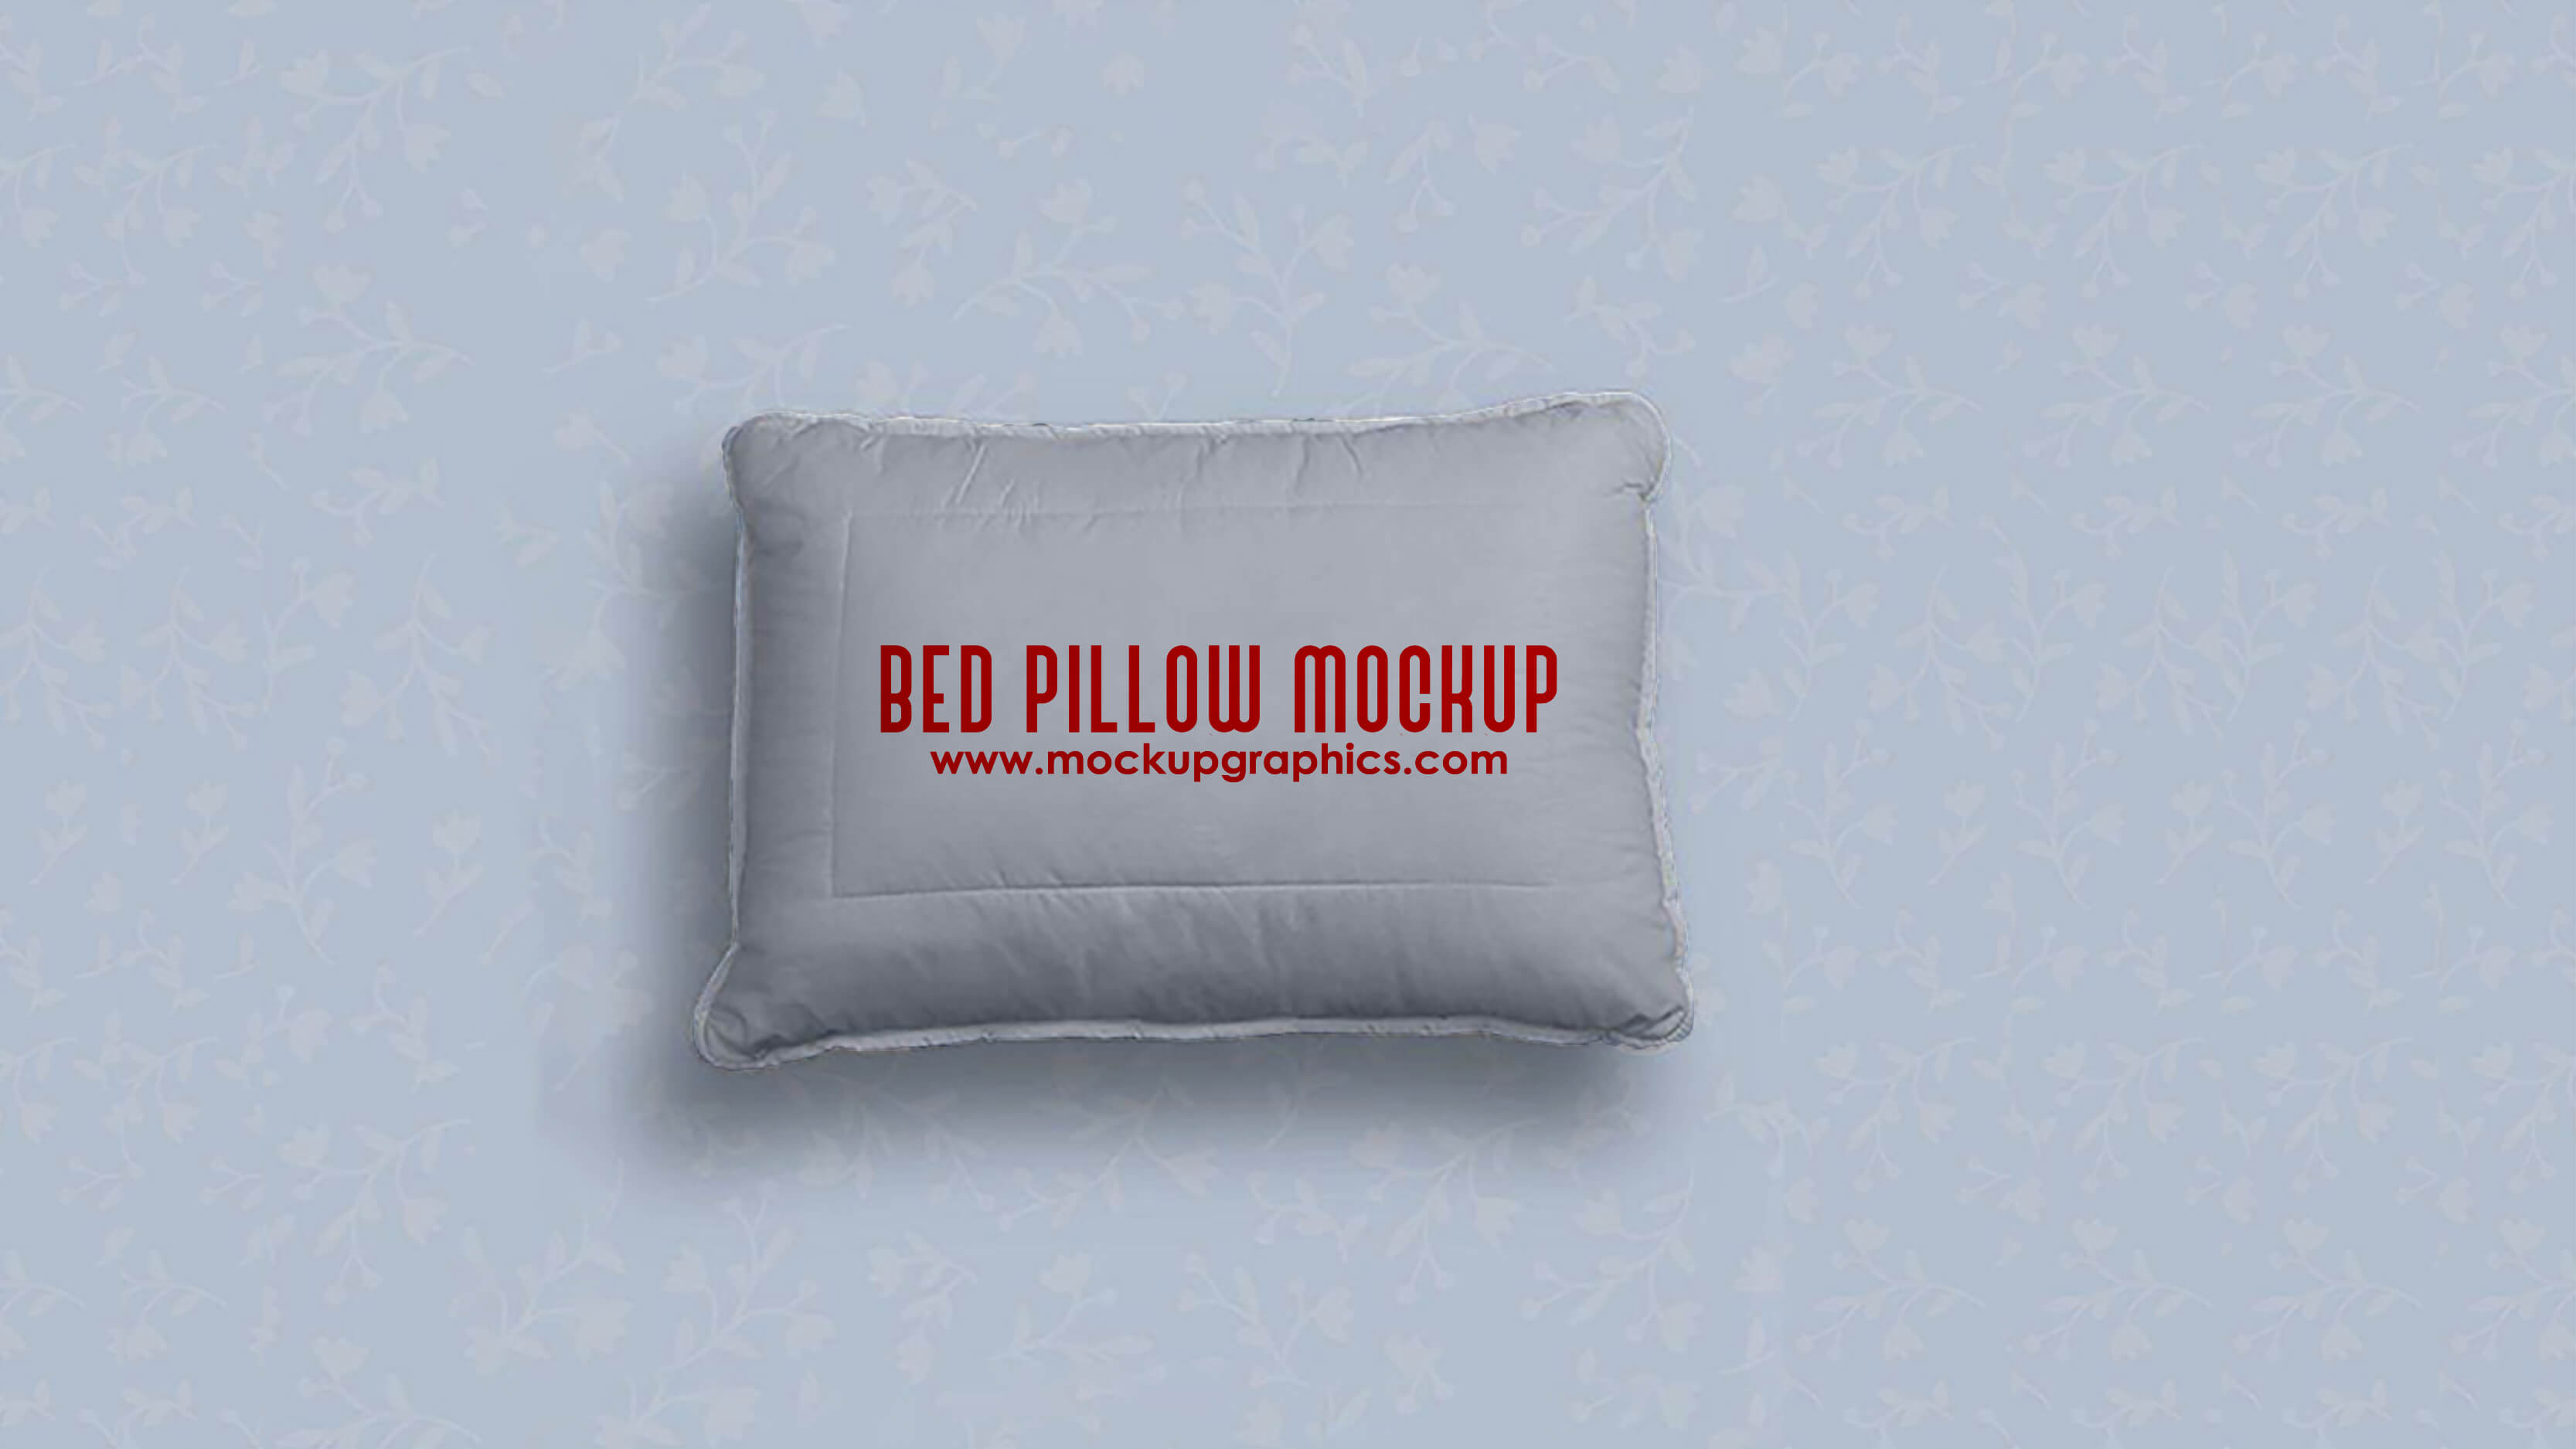 bed-pillow-mockup-www.mockupgraphics.com